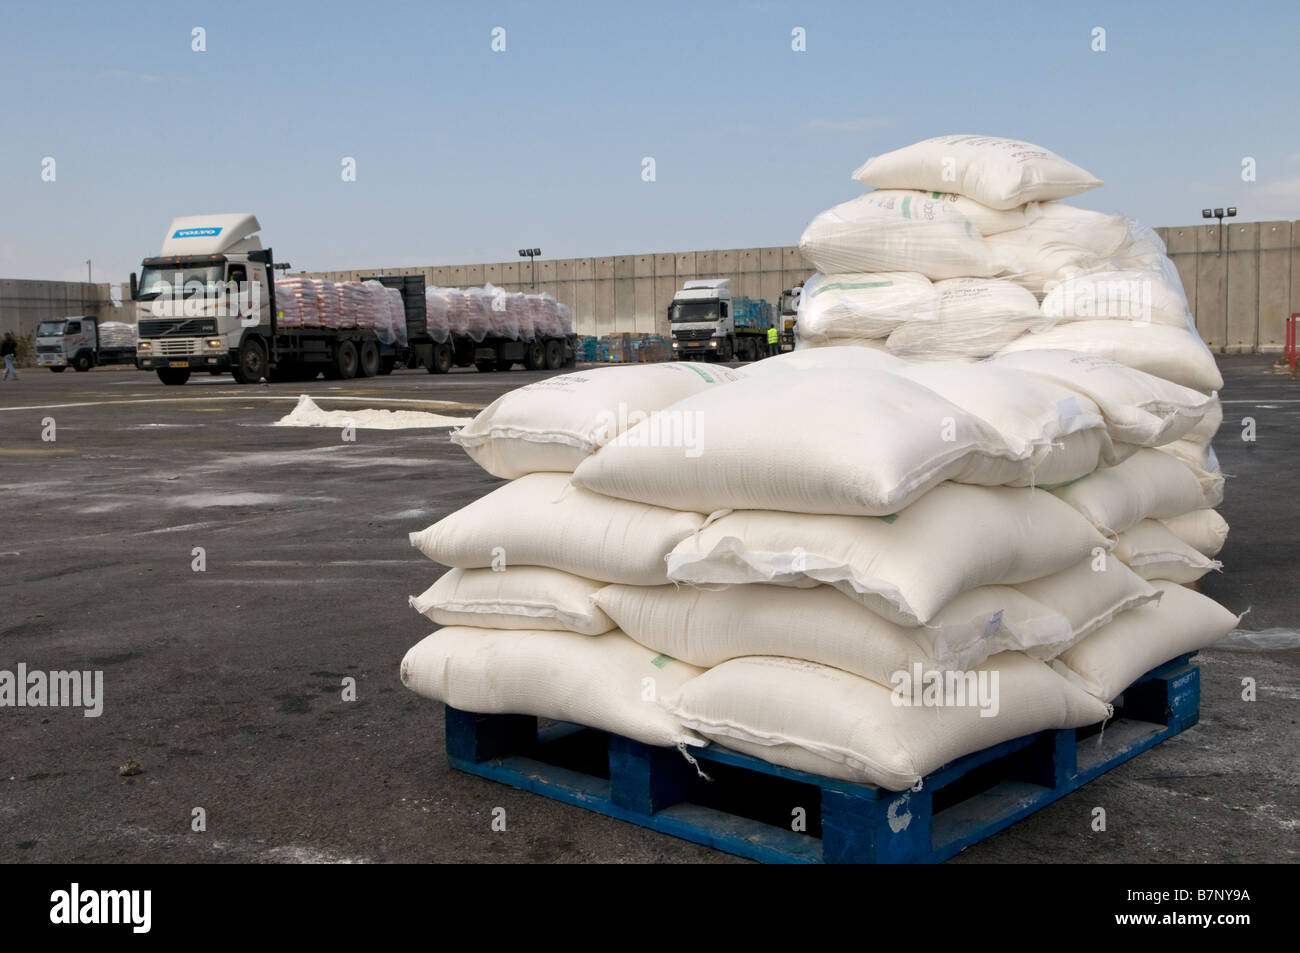 Humanitarian food supplies is prepared to enter Gaza strip at the Kerem Shalom border crossing southern Israel - Stock Image